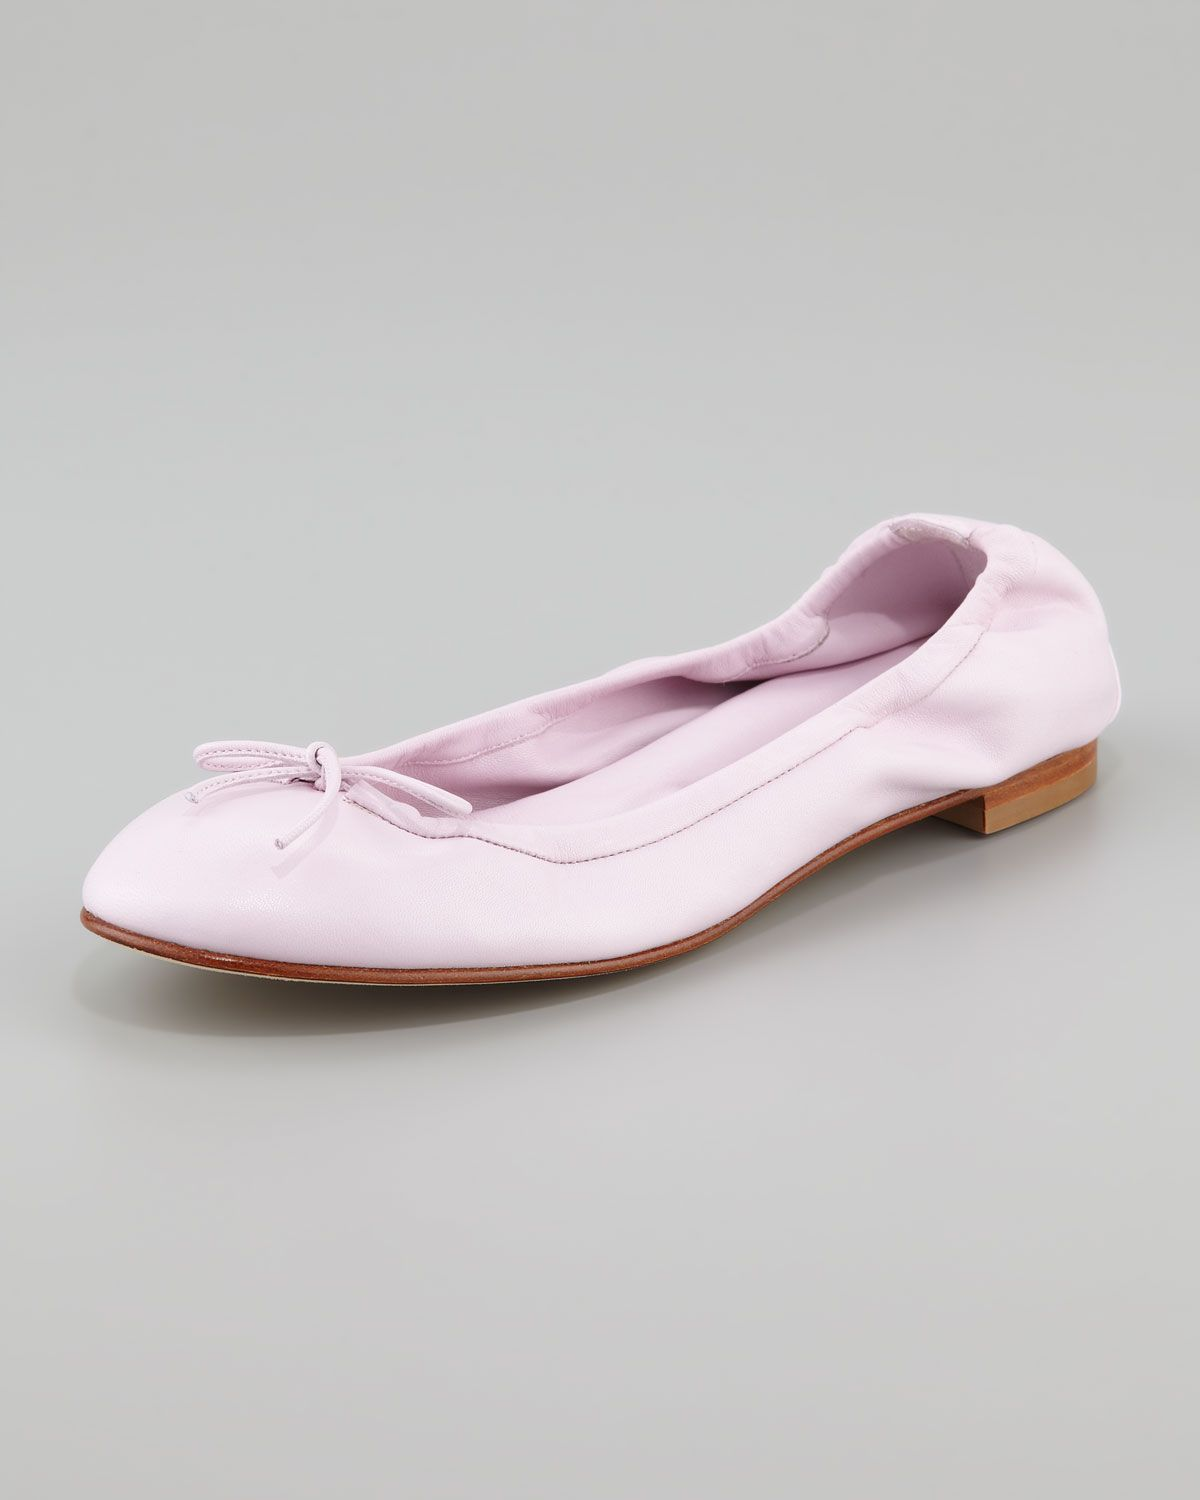 """Tobaly"" ballerina flats in lilac pink with bow from Manolo Blahnik."